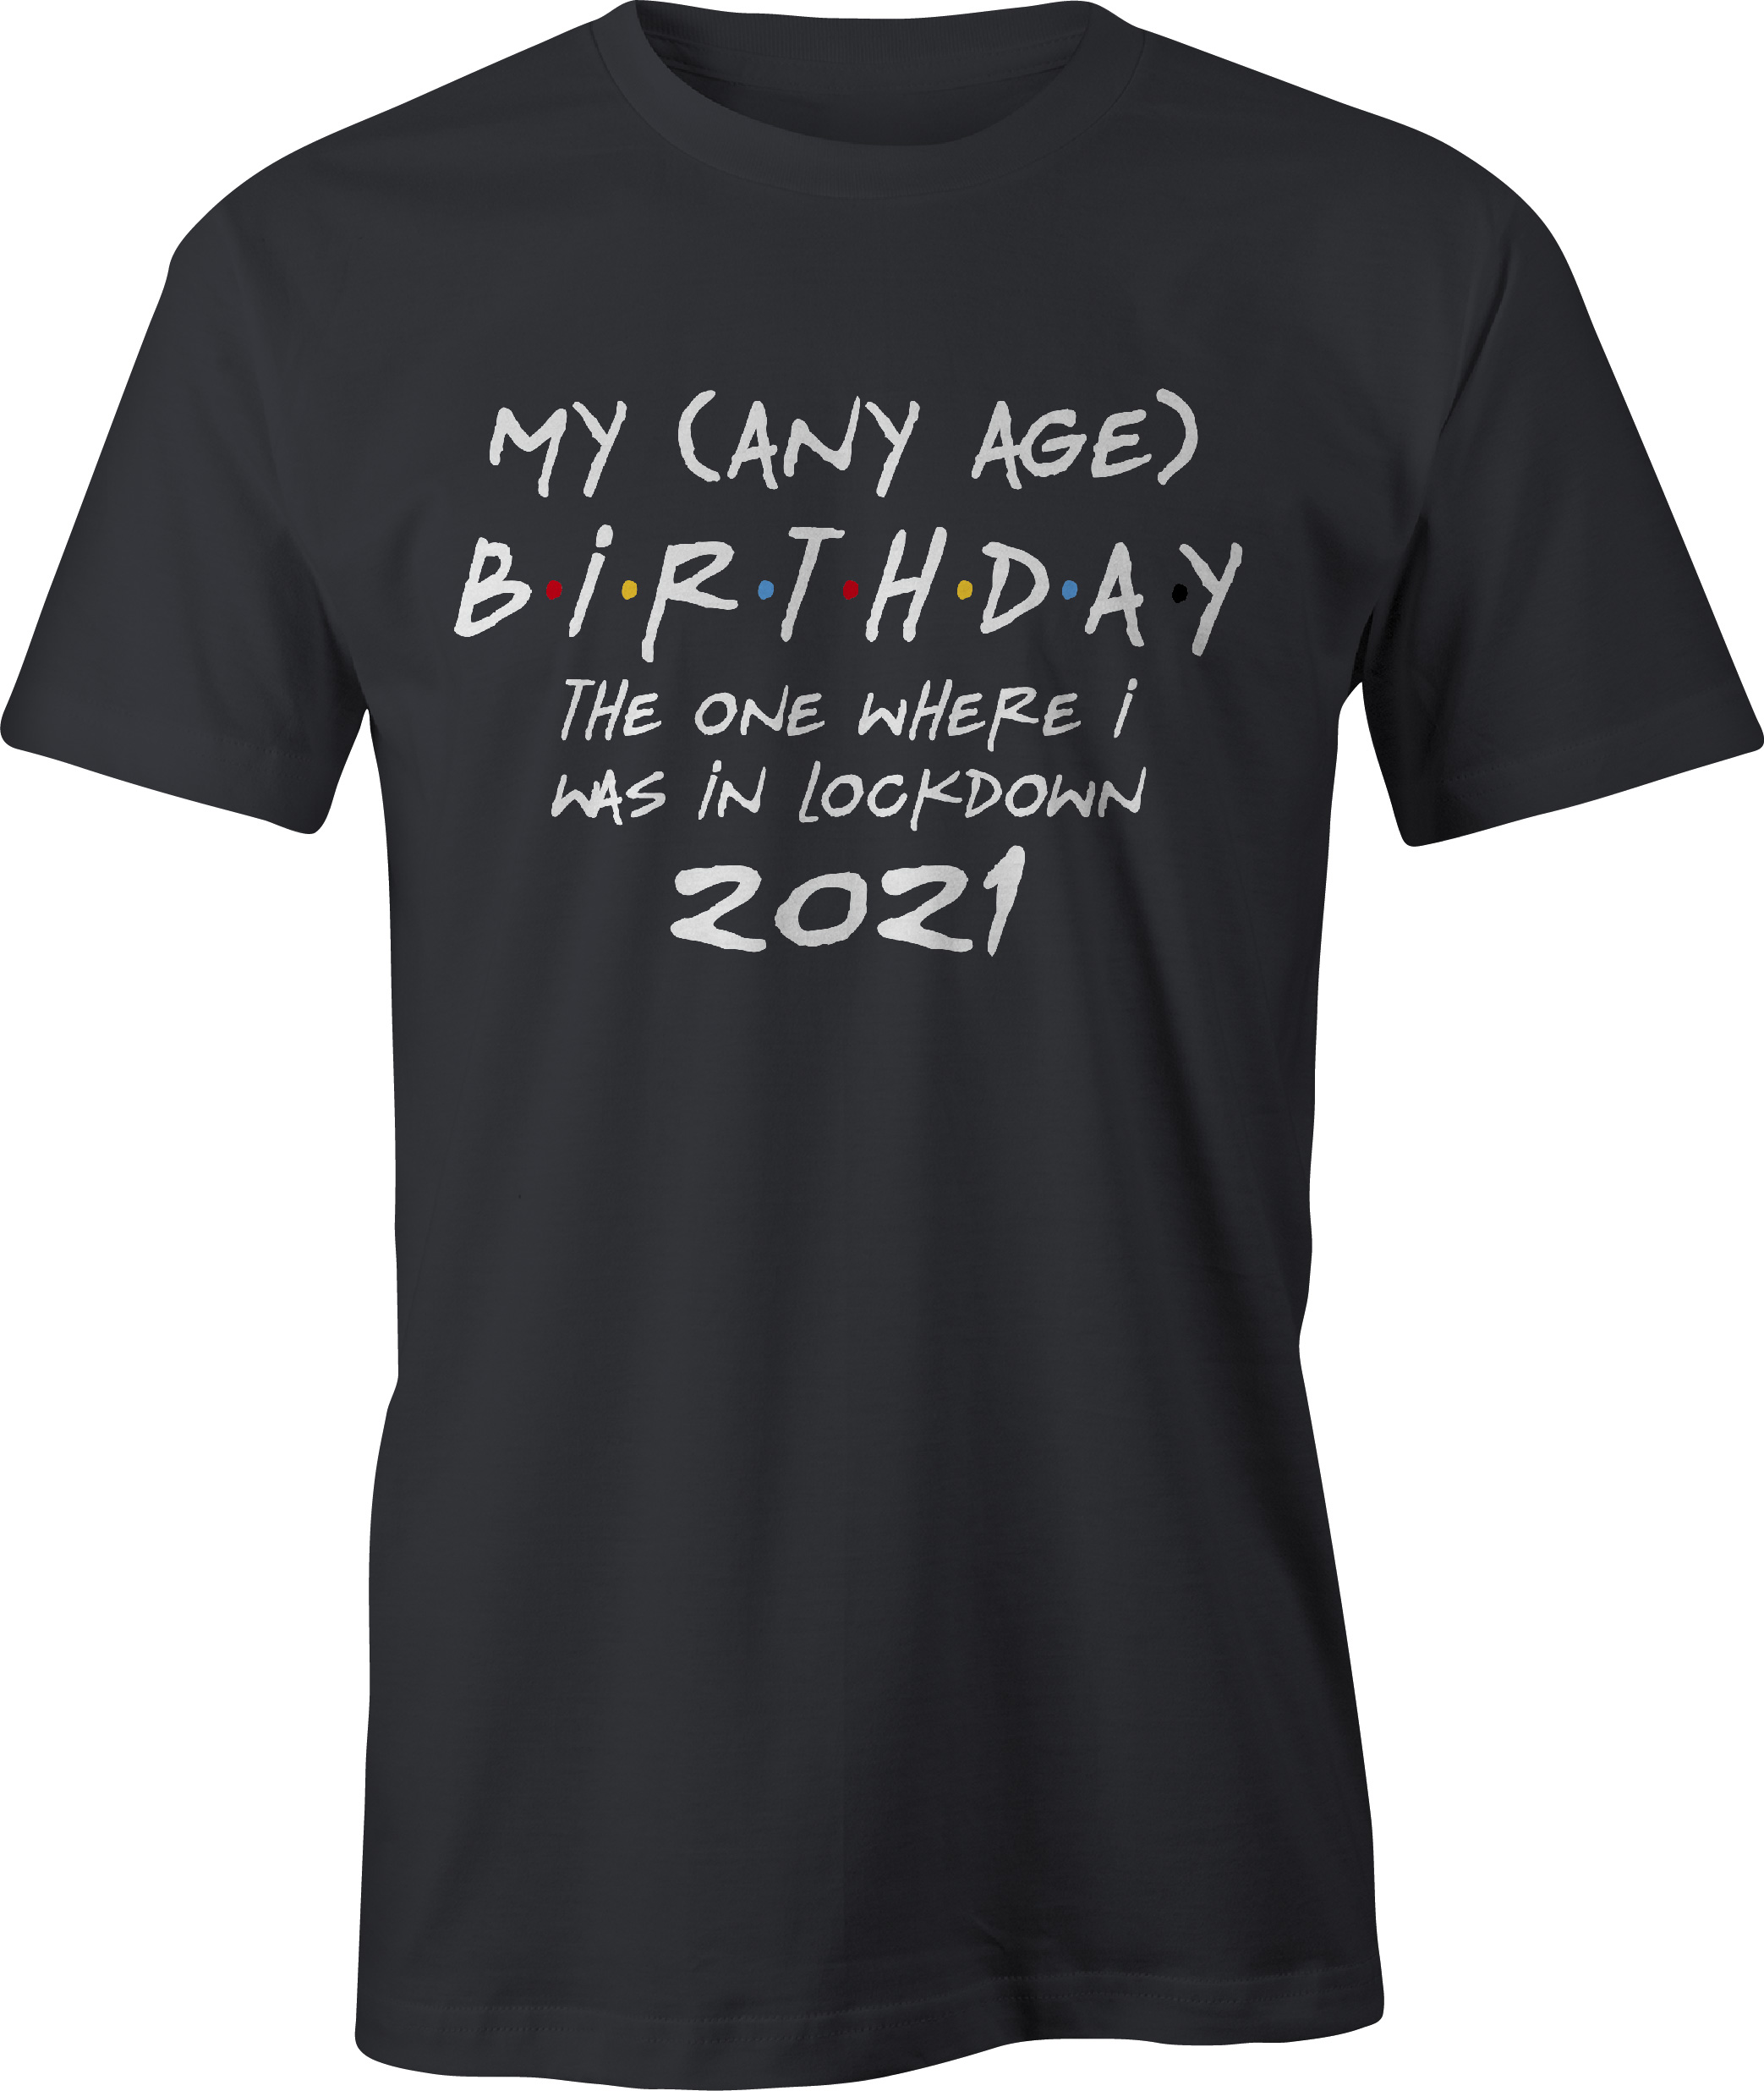 Friends style any age birthday in lockdown t shirt in black